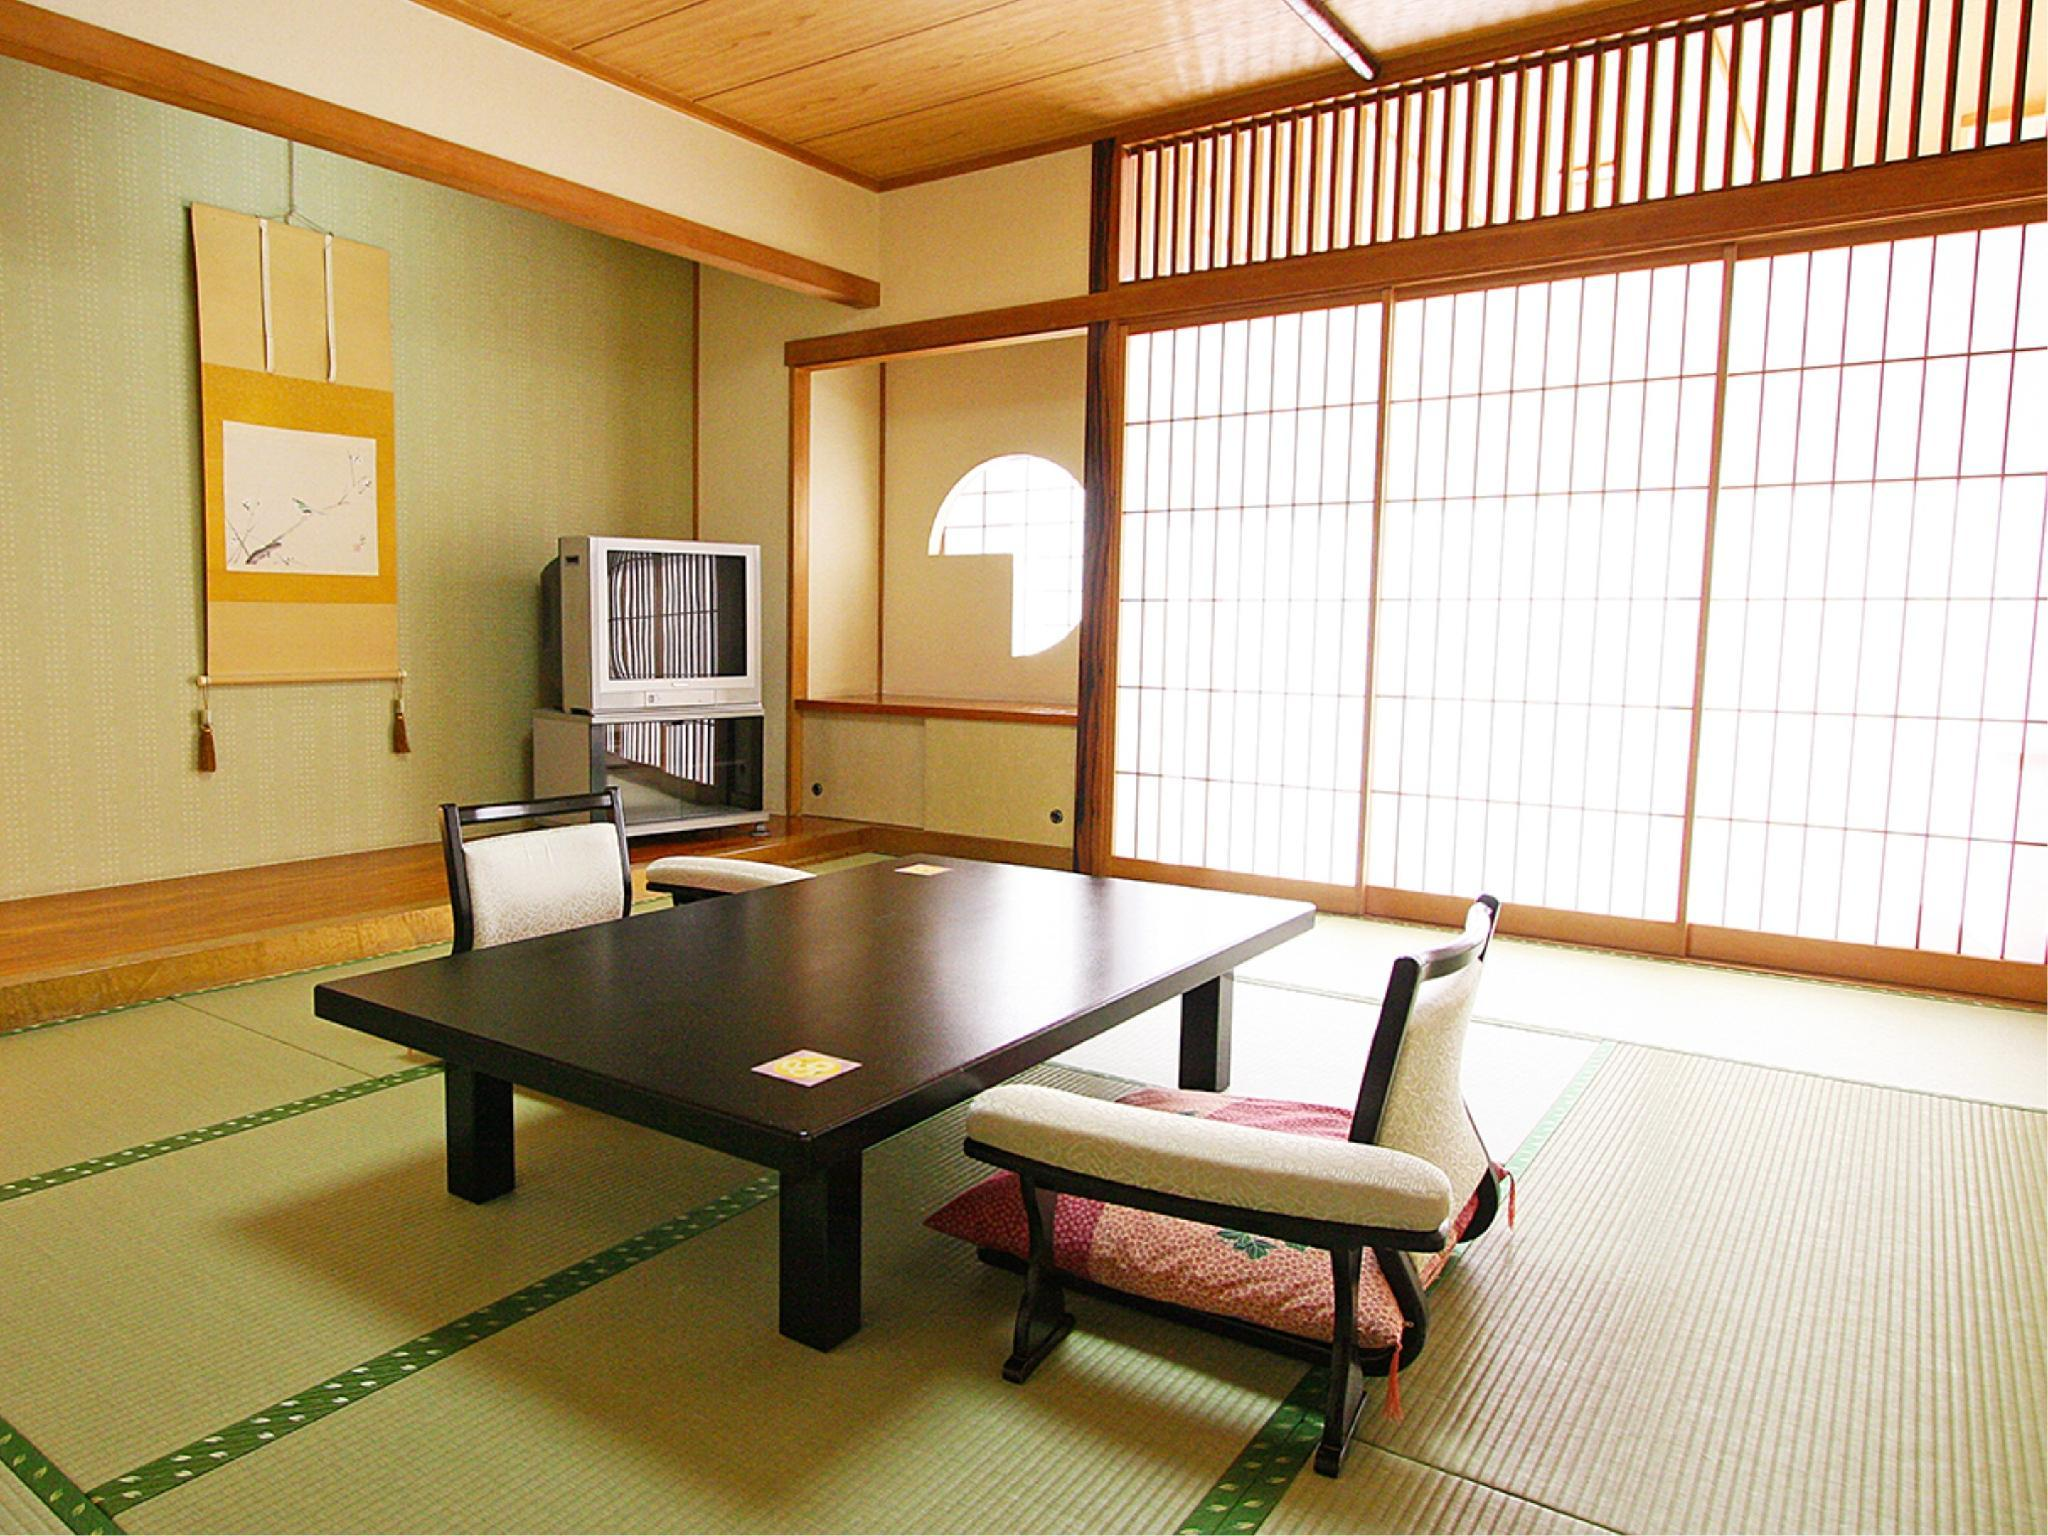 おまかせ・和室10畳(バス・トイレ付)または8畳(トイレ付) (Japanese-style Room *Allocated on arrival, Has bath and toilet or Has toilet)